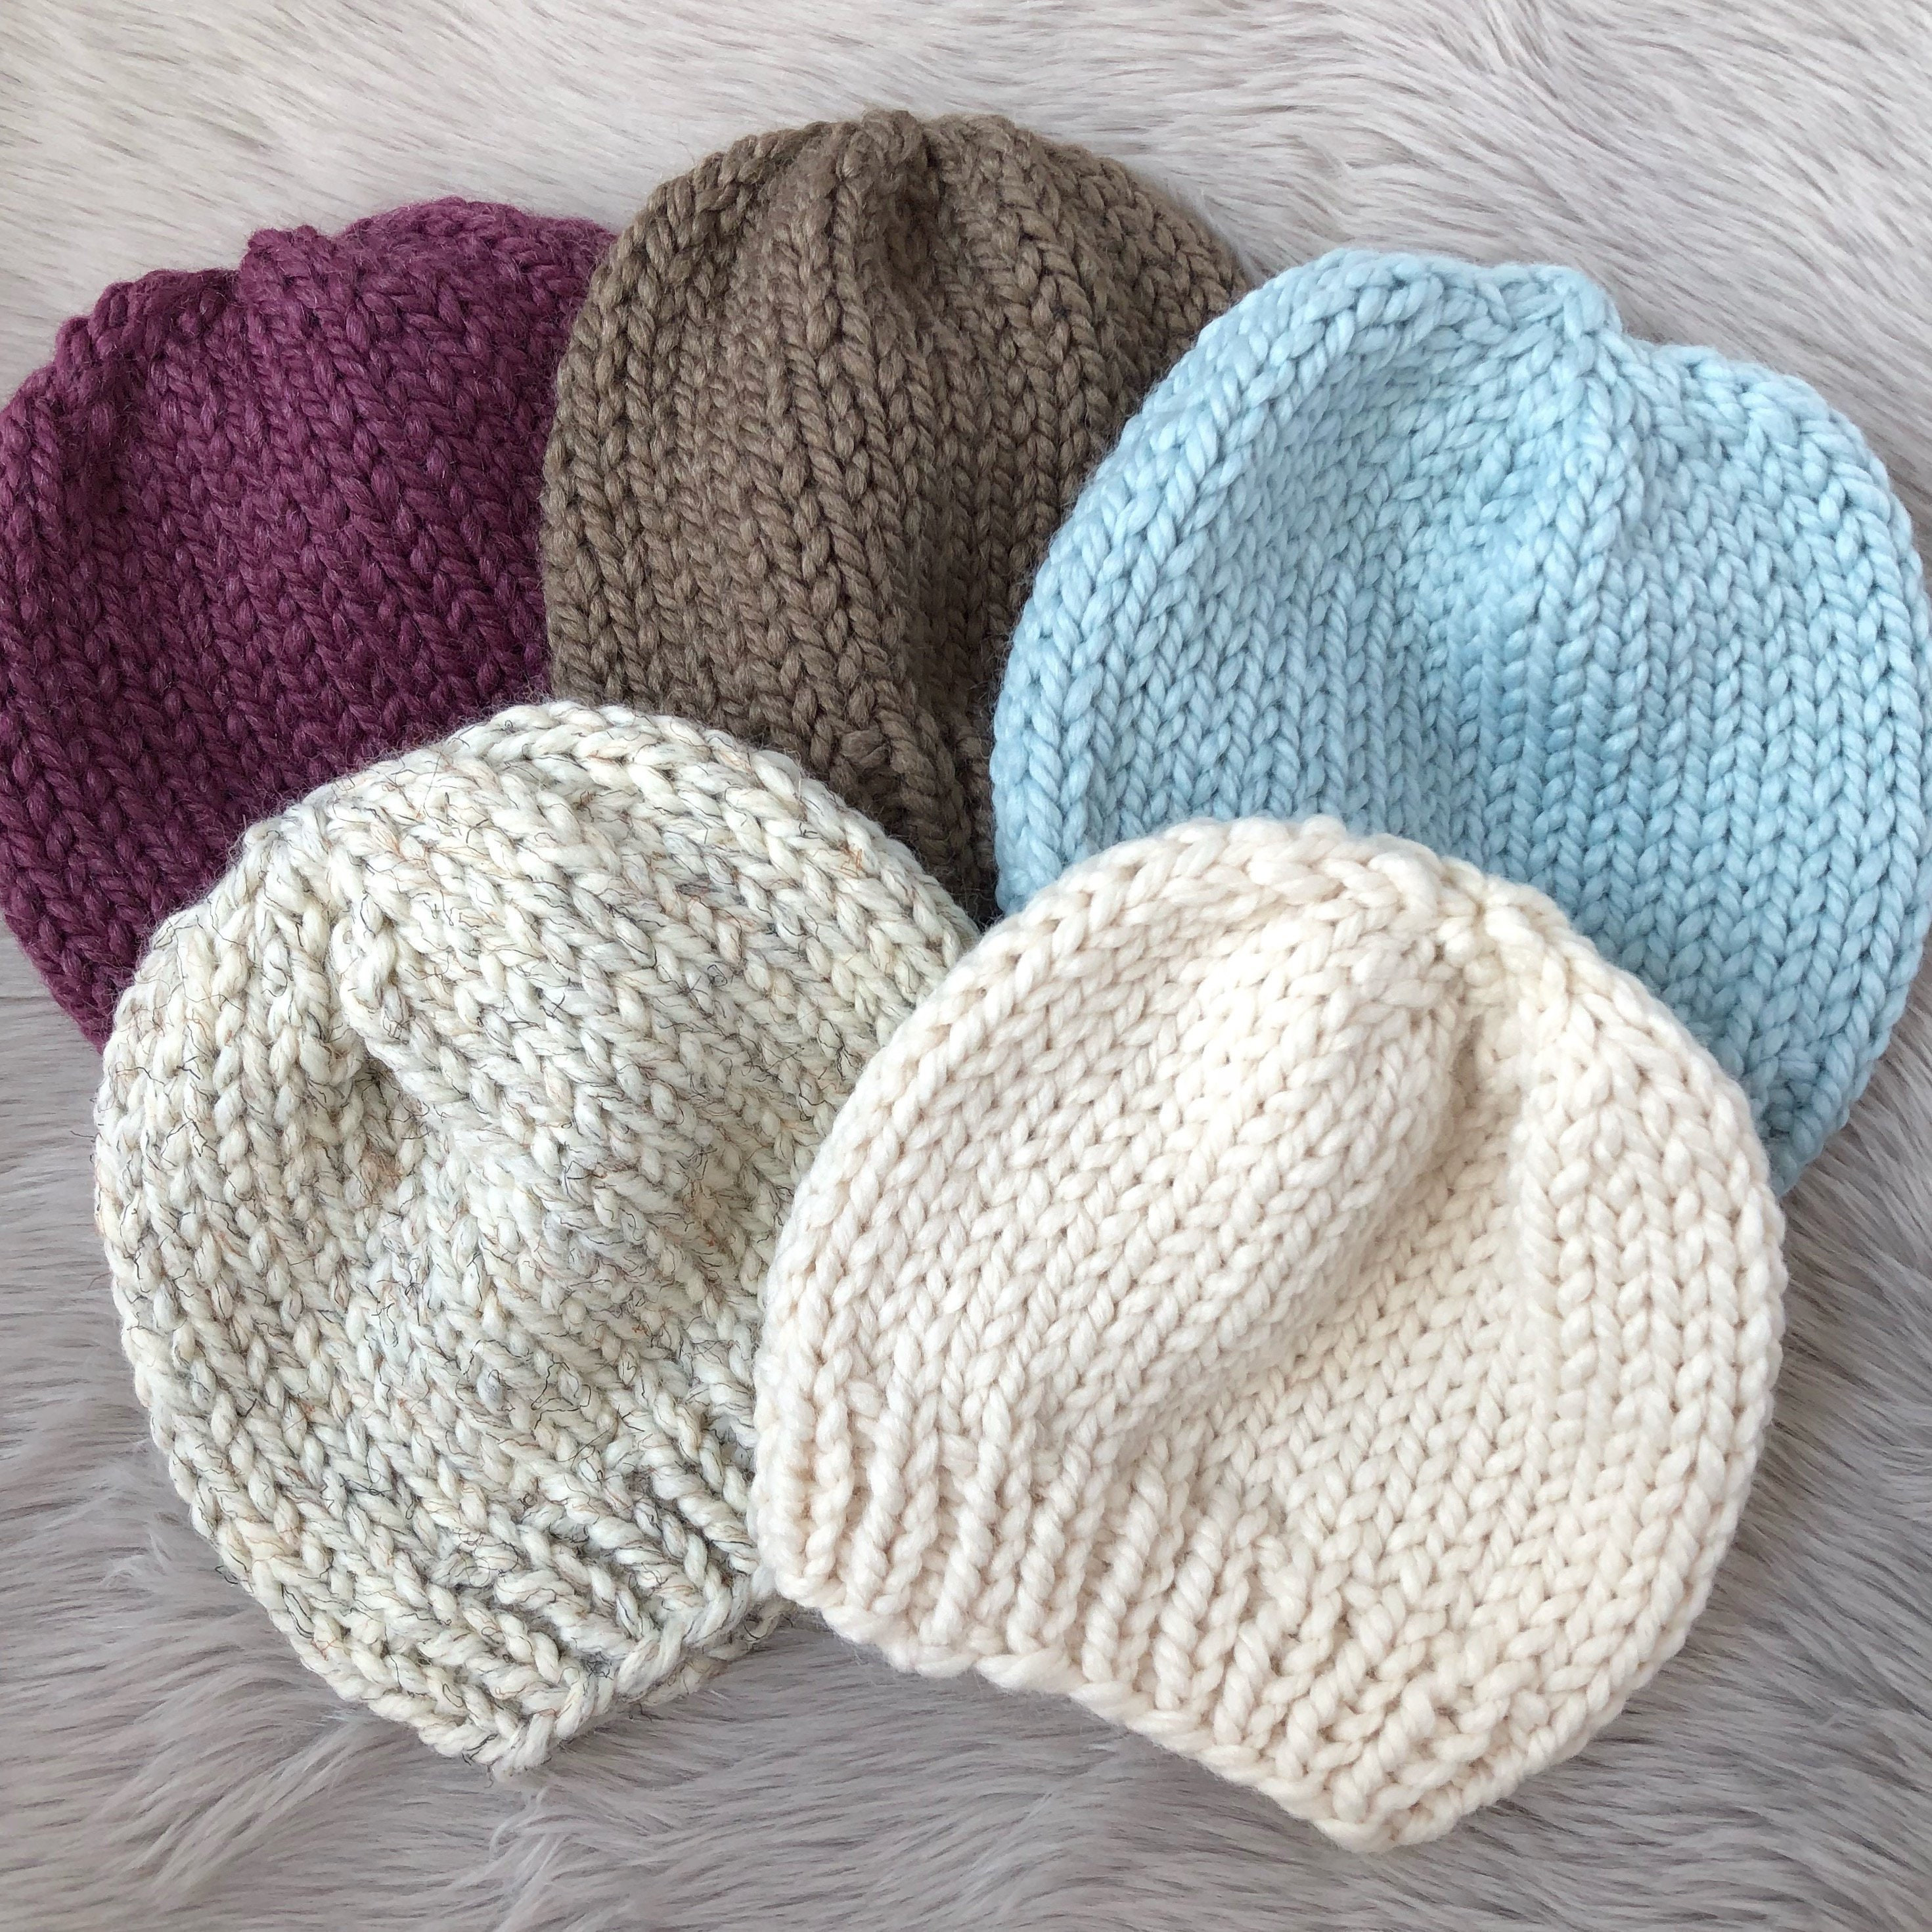 Hillside Basic Beanie   Knitted Hat   Knitted Toque   Ready to  9de4a8ee46c